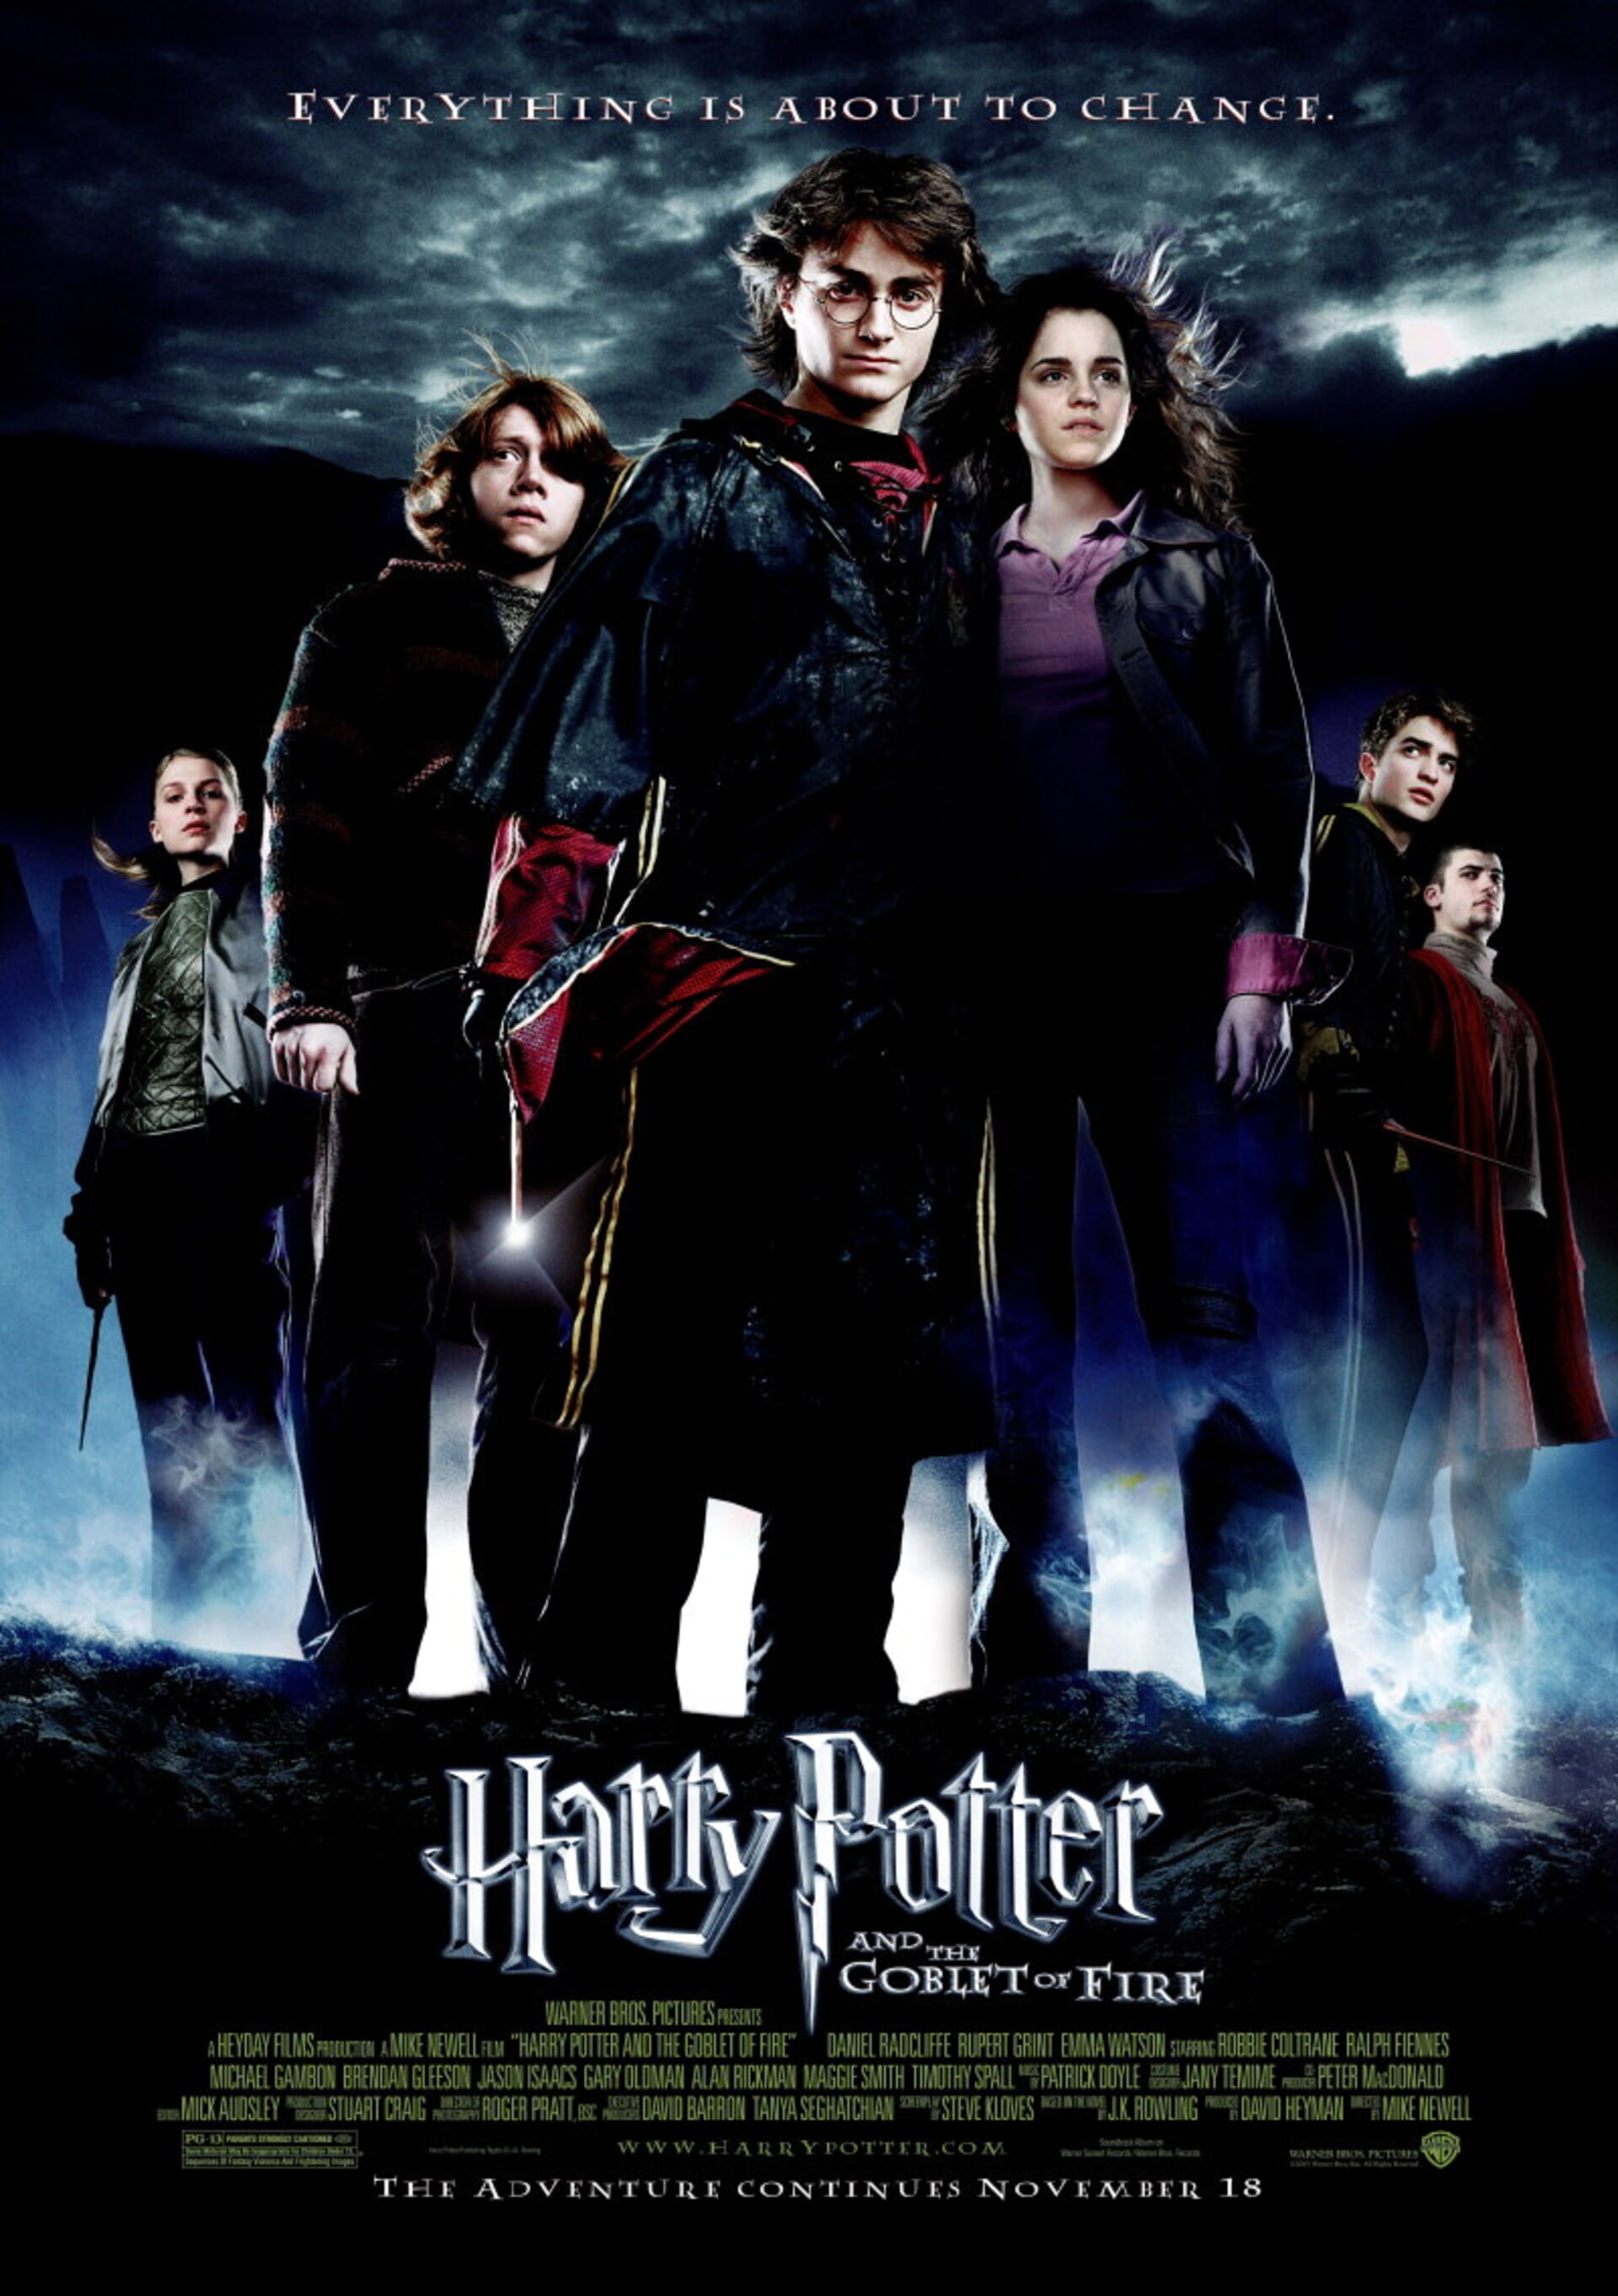 Harry Potter and the Goblet of Fire - Poster 2